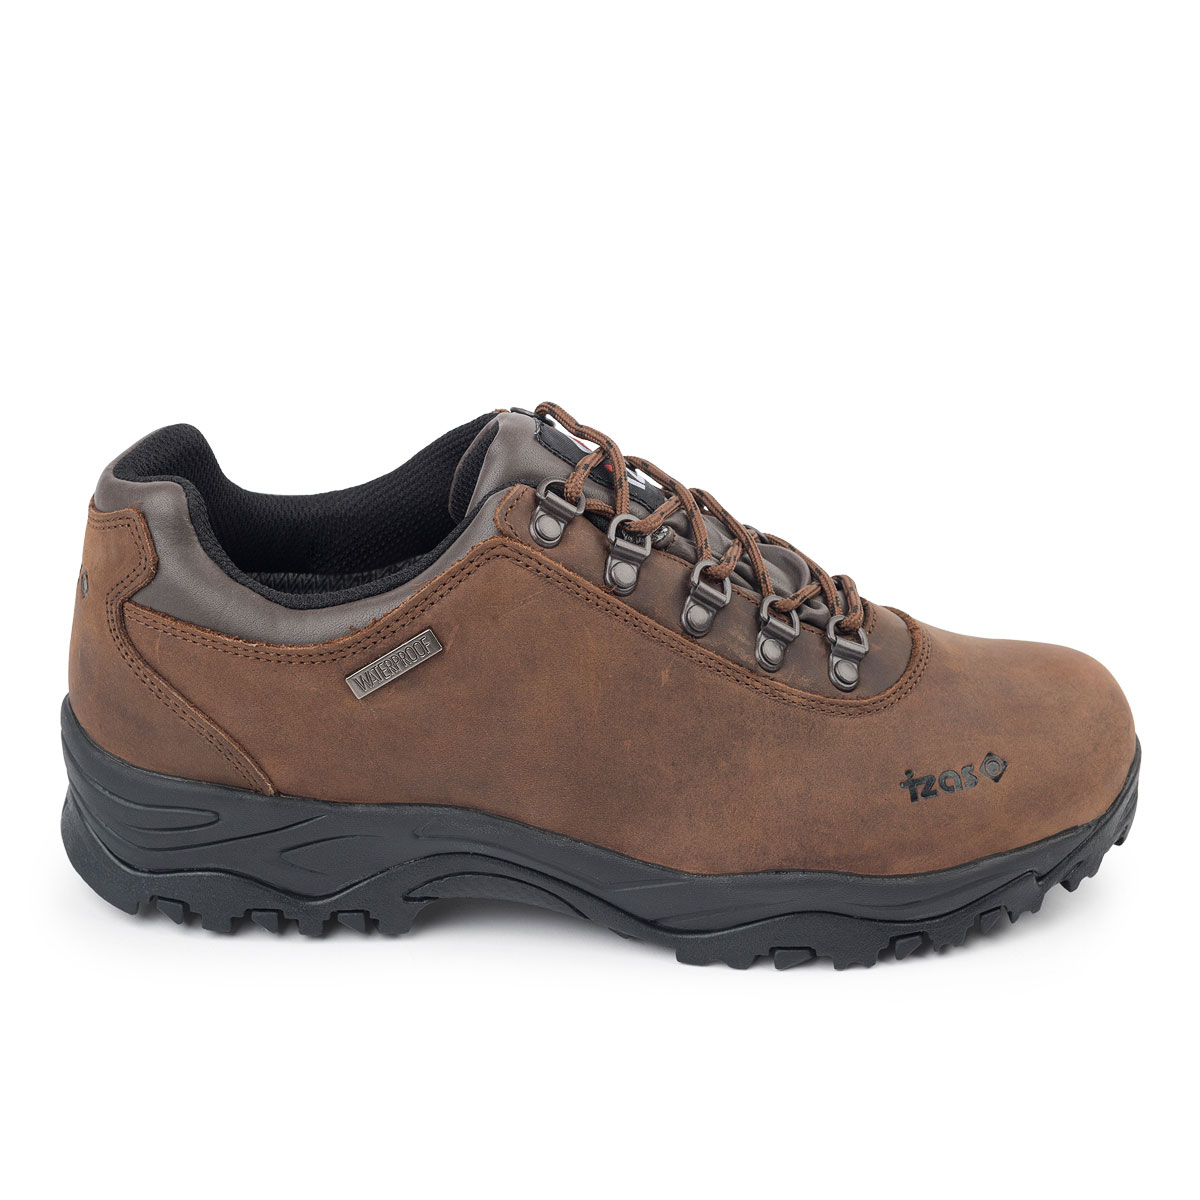 MAN'S FONS SHOES BROWN